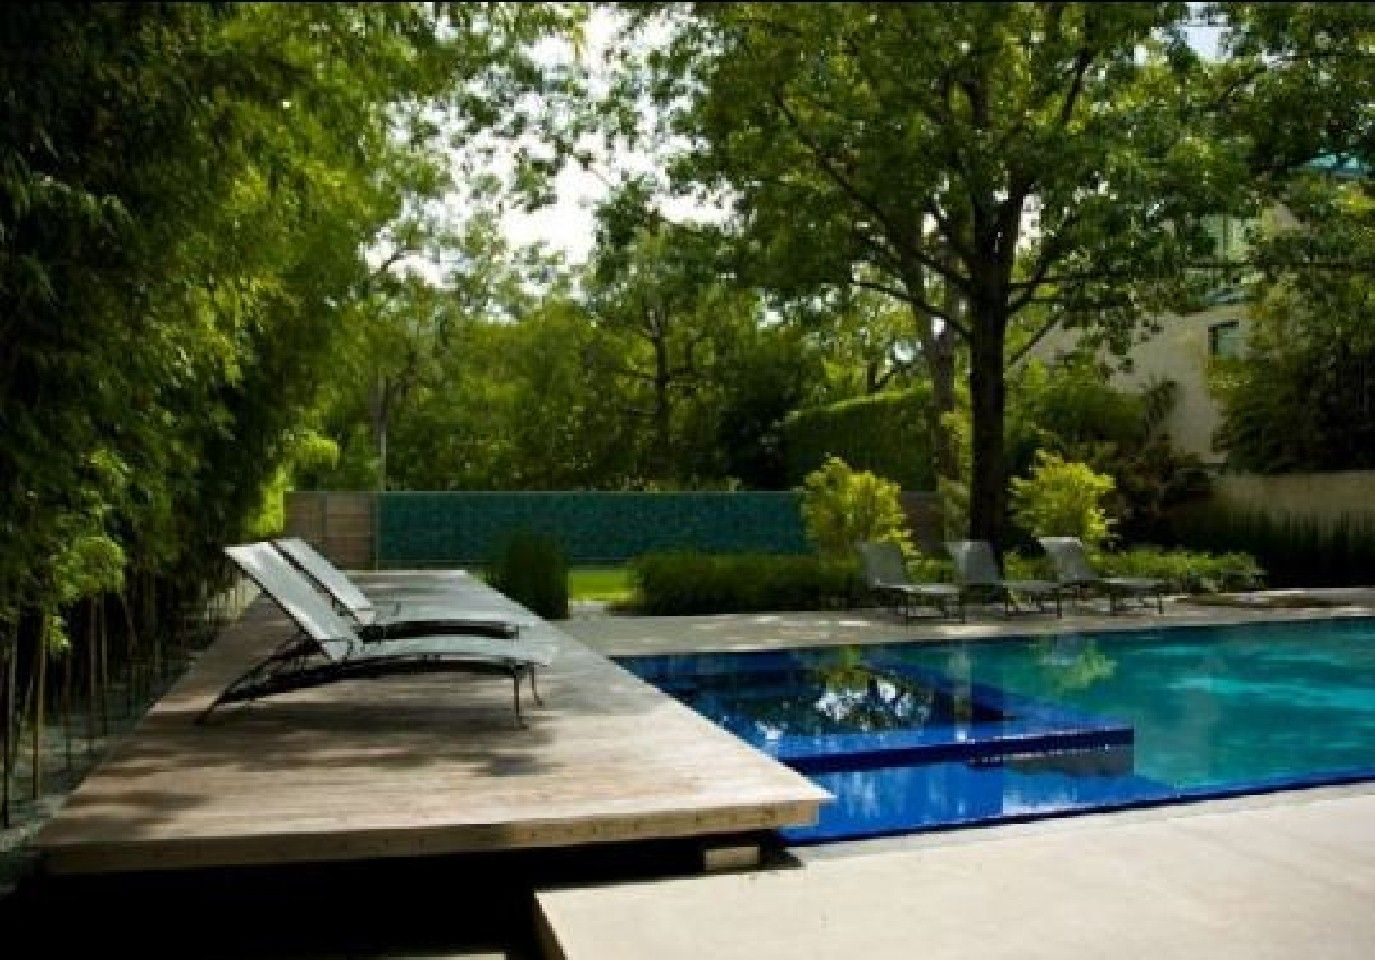 Nature Modern Wooden House Garden And Swimming Pool At Dallas - House with garden and swimming pool